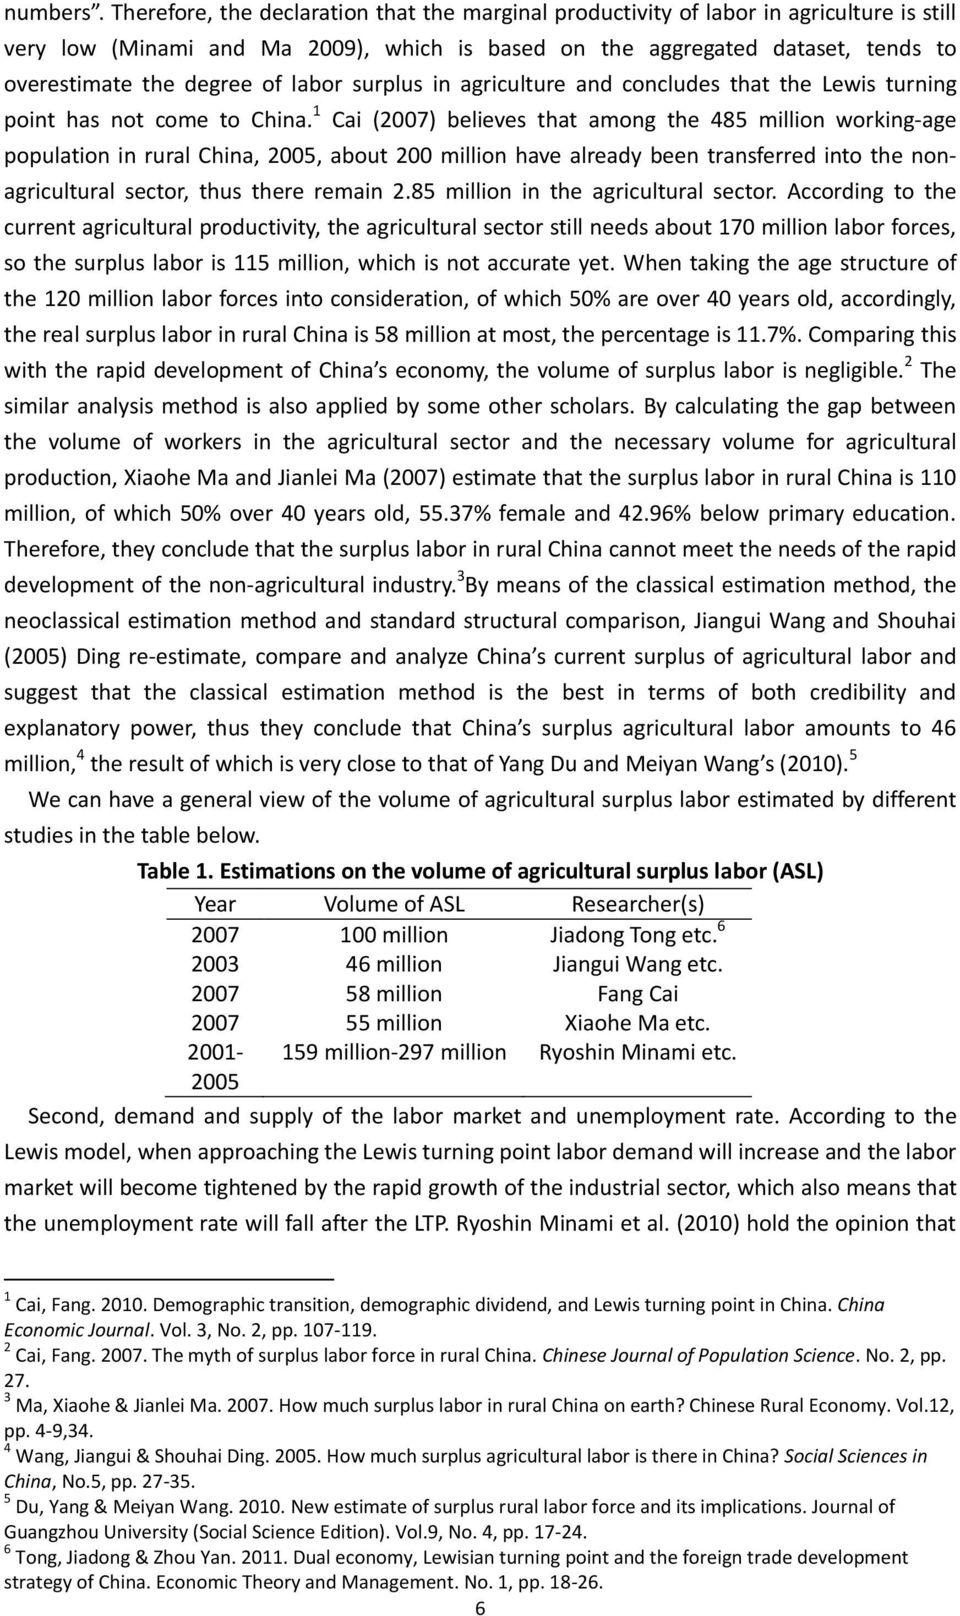 labor surplus in agriculture and concludes that the Lewis turning point has not come to China.